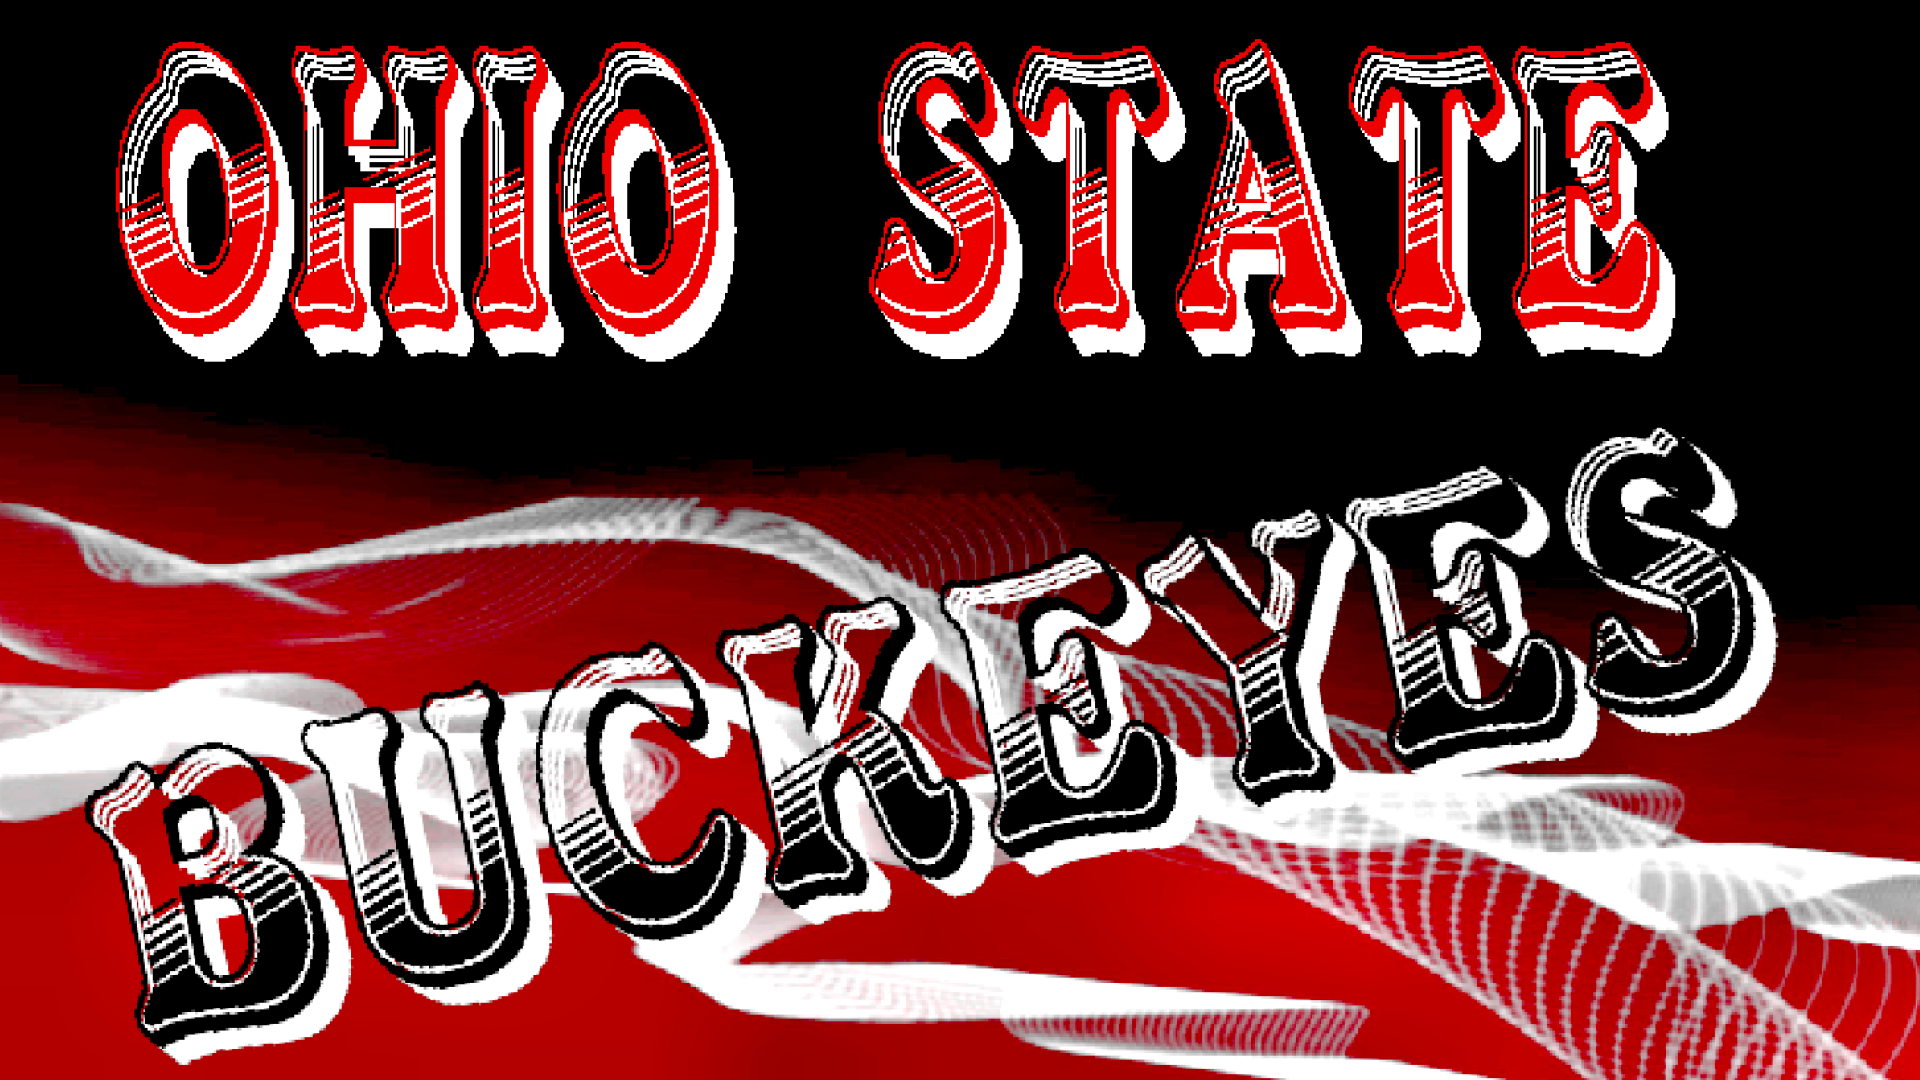 Ohio State Football images ohio state buckeyes wallpaper photos 1920x1080